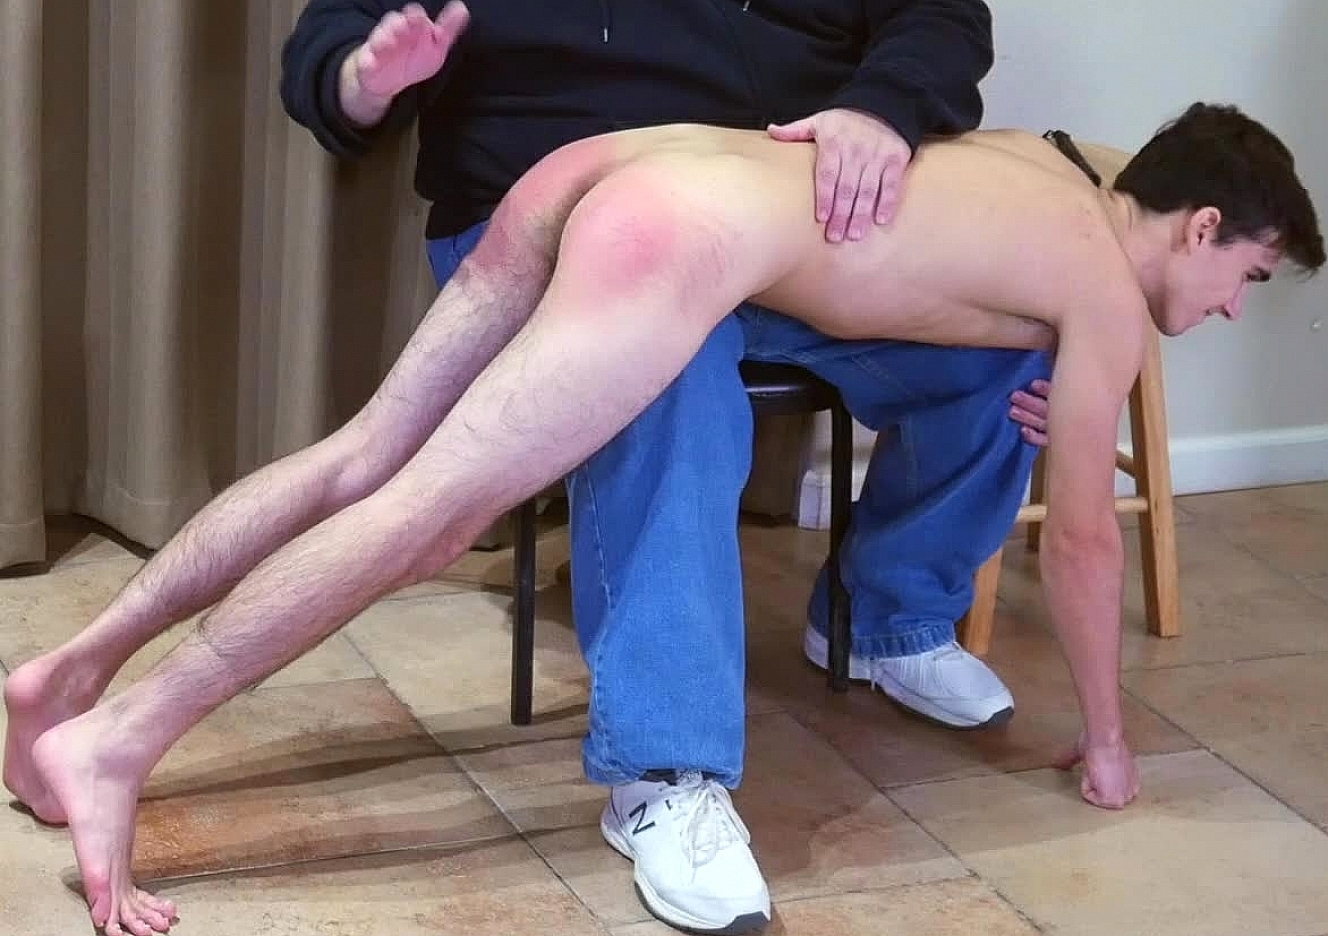 content/191222103-carters-first-spanking-part-2/0.jpg